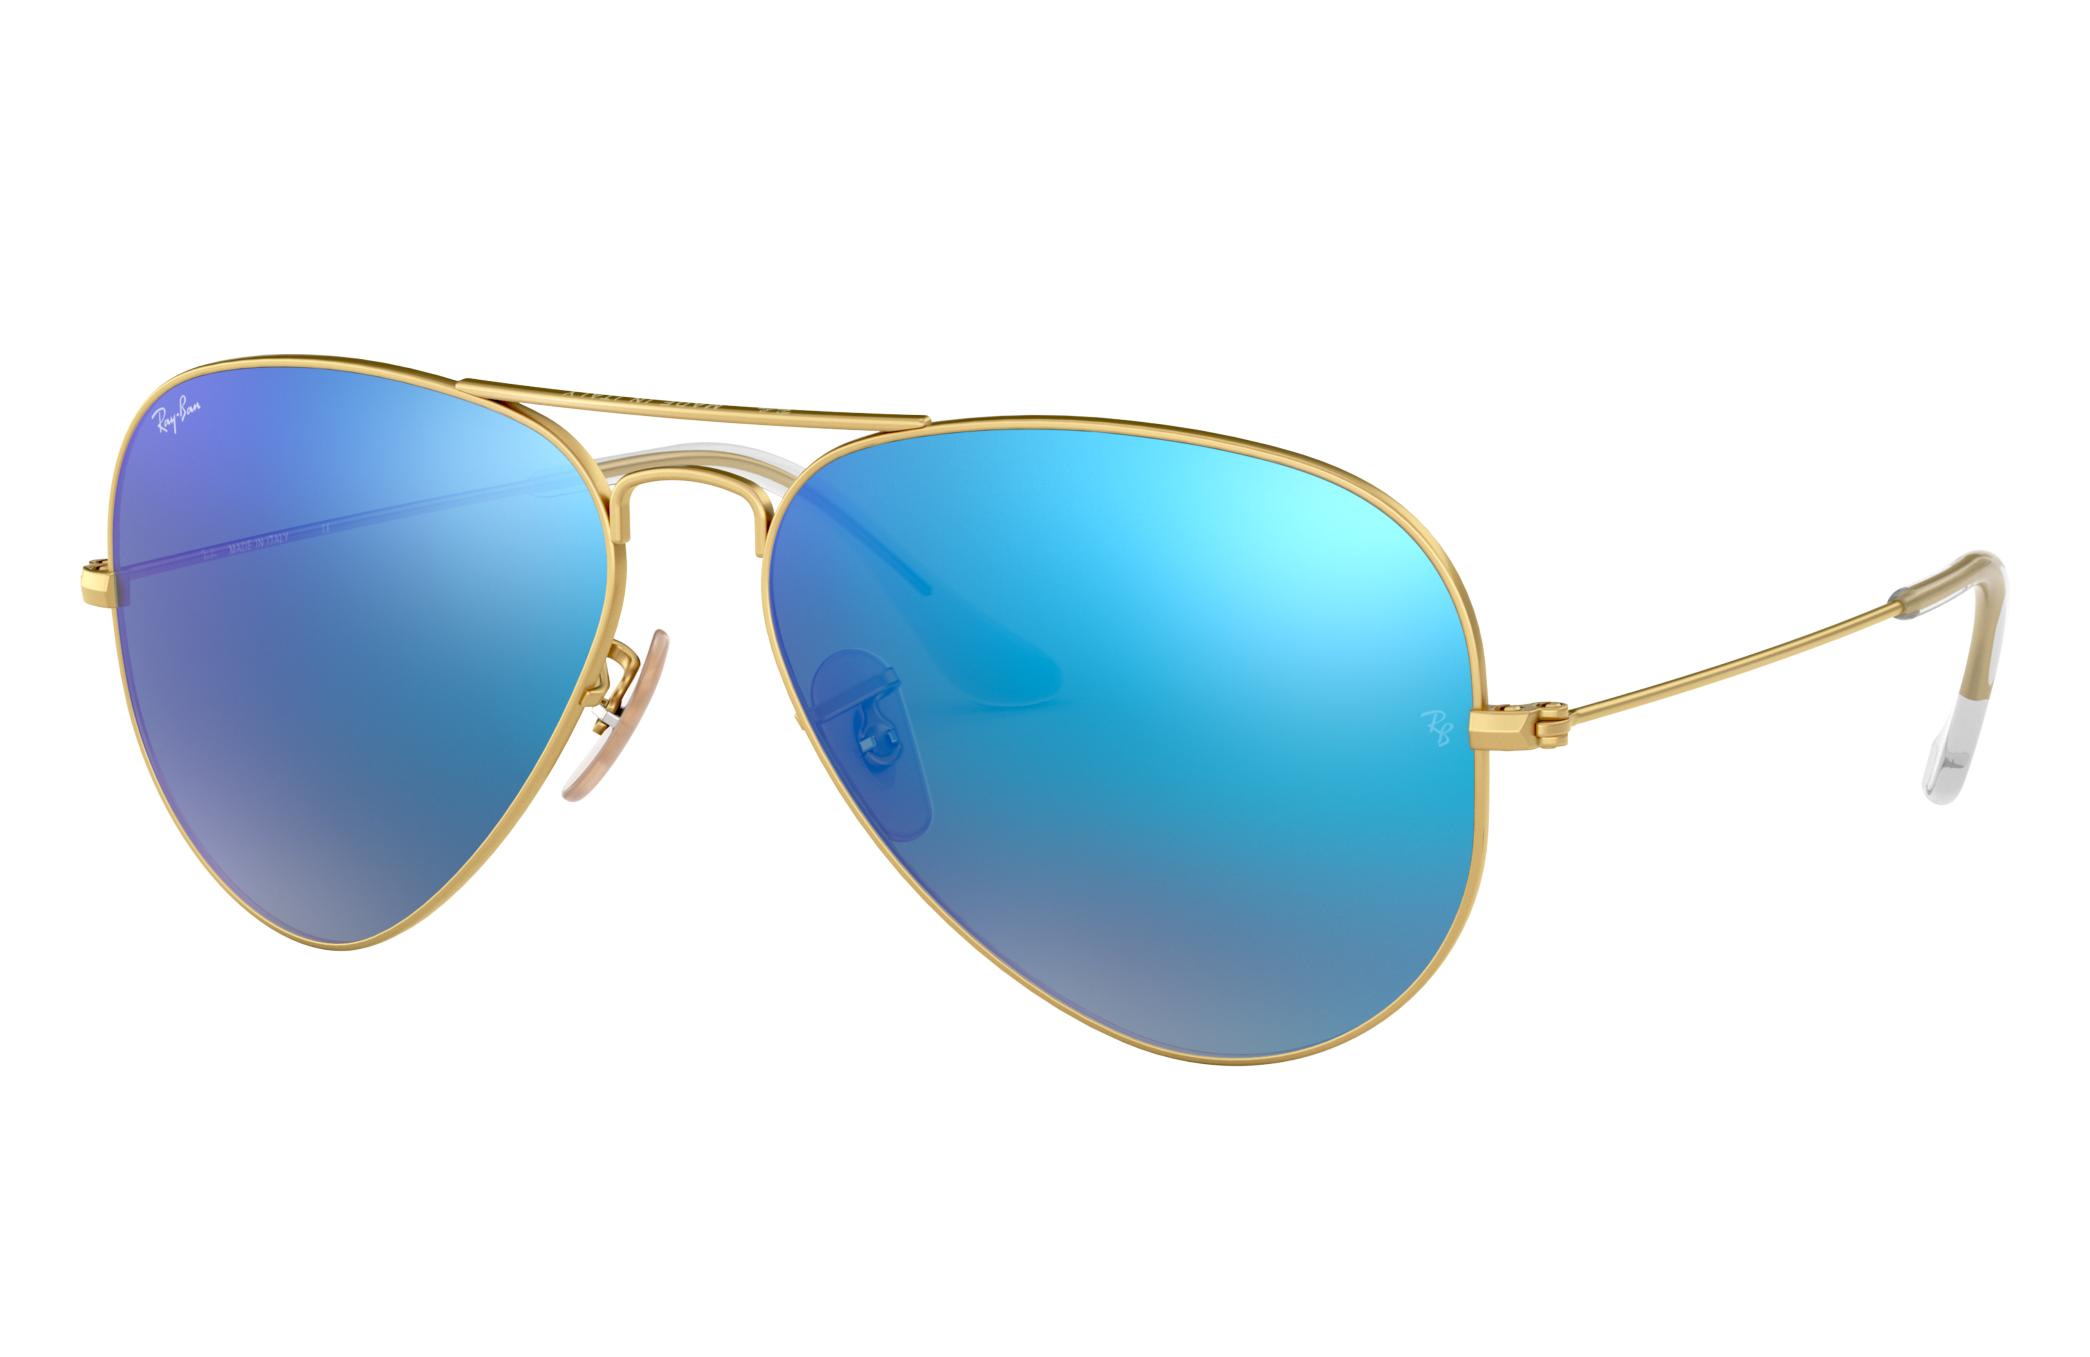 https://images.ray-ban.com/is/image/RayBan/8053672000481__002.png?impolicy=RB_RB_FBShare